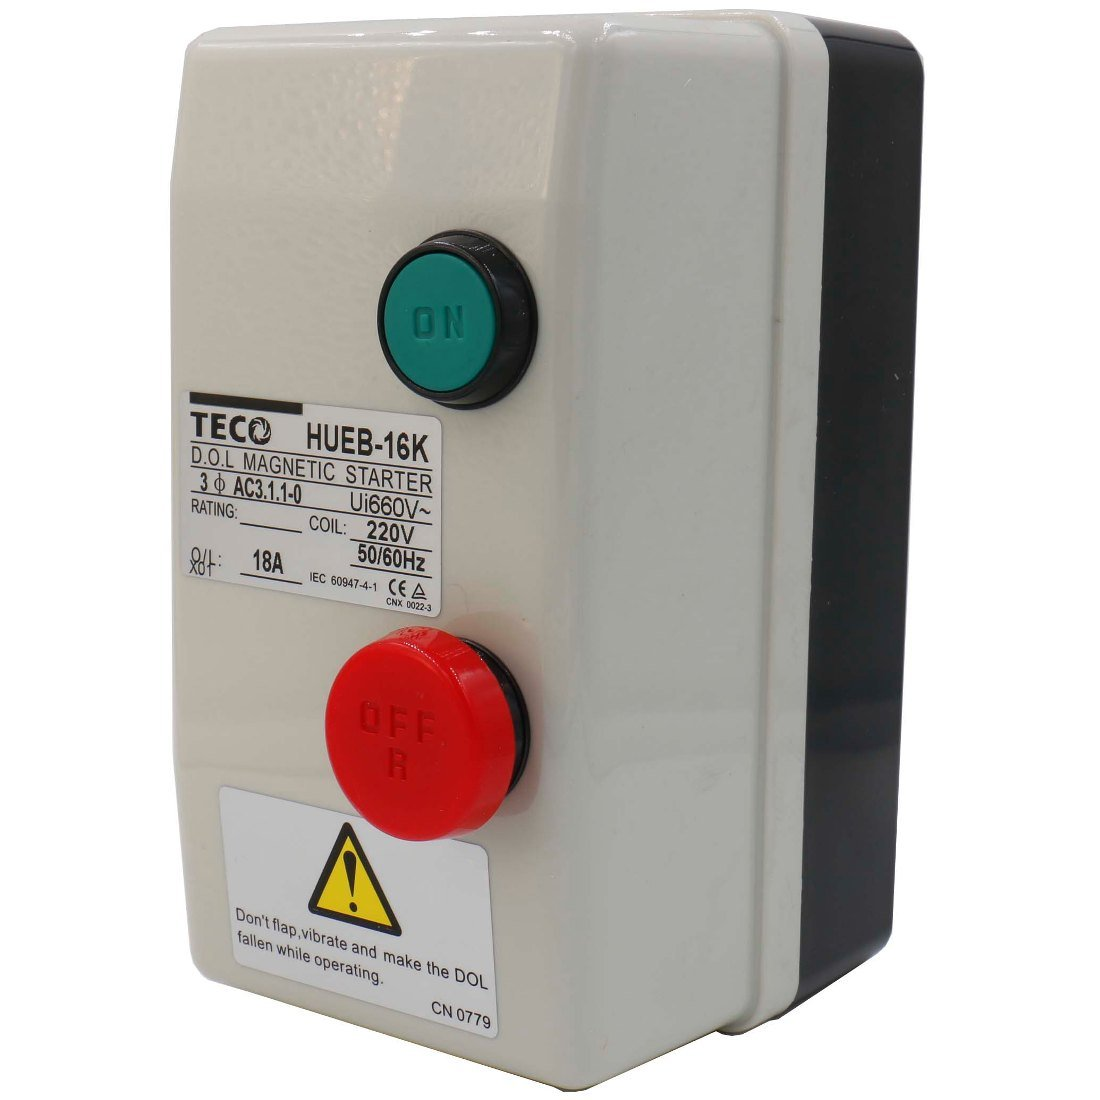 Baomain Magnetic Starter HUEB-16K On Off Switch Enclosed 3 Pole 220V Coil 12.5-18A